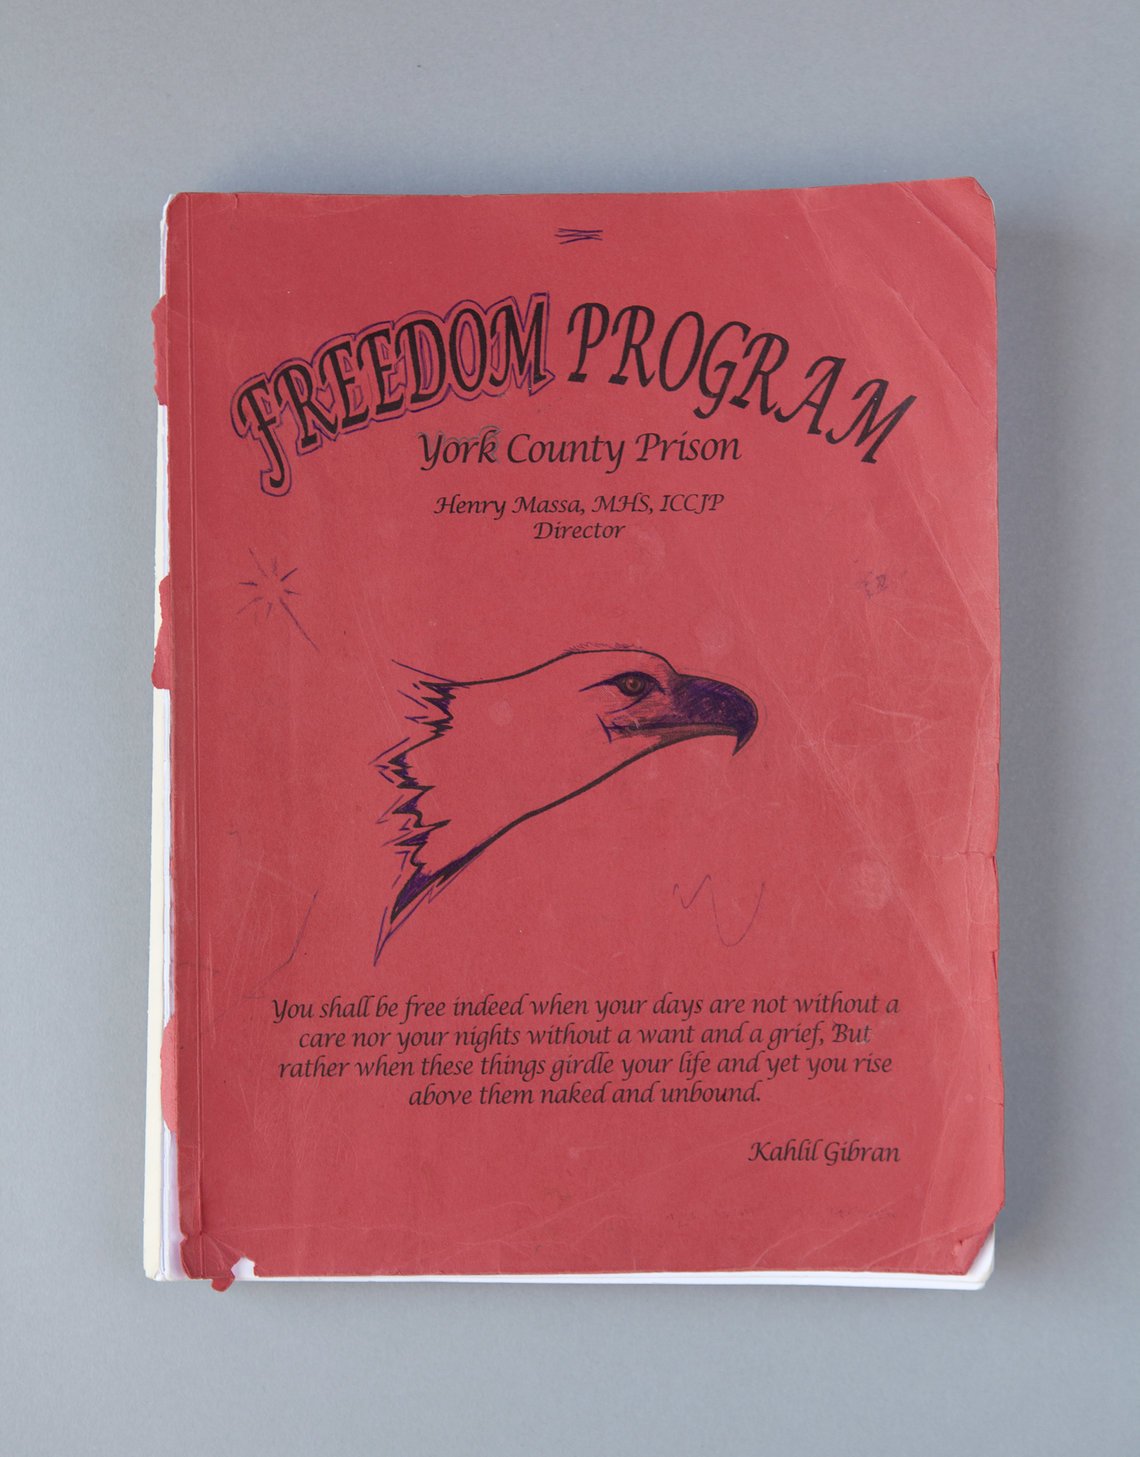 A workbook for the Freedom Program, a four-month dorm-based rehab offered at York County Prison in Pennsylvania.